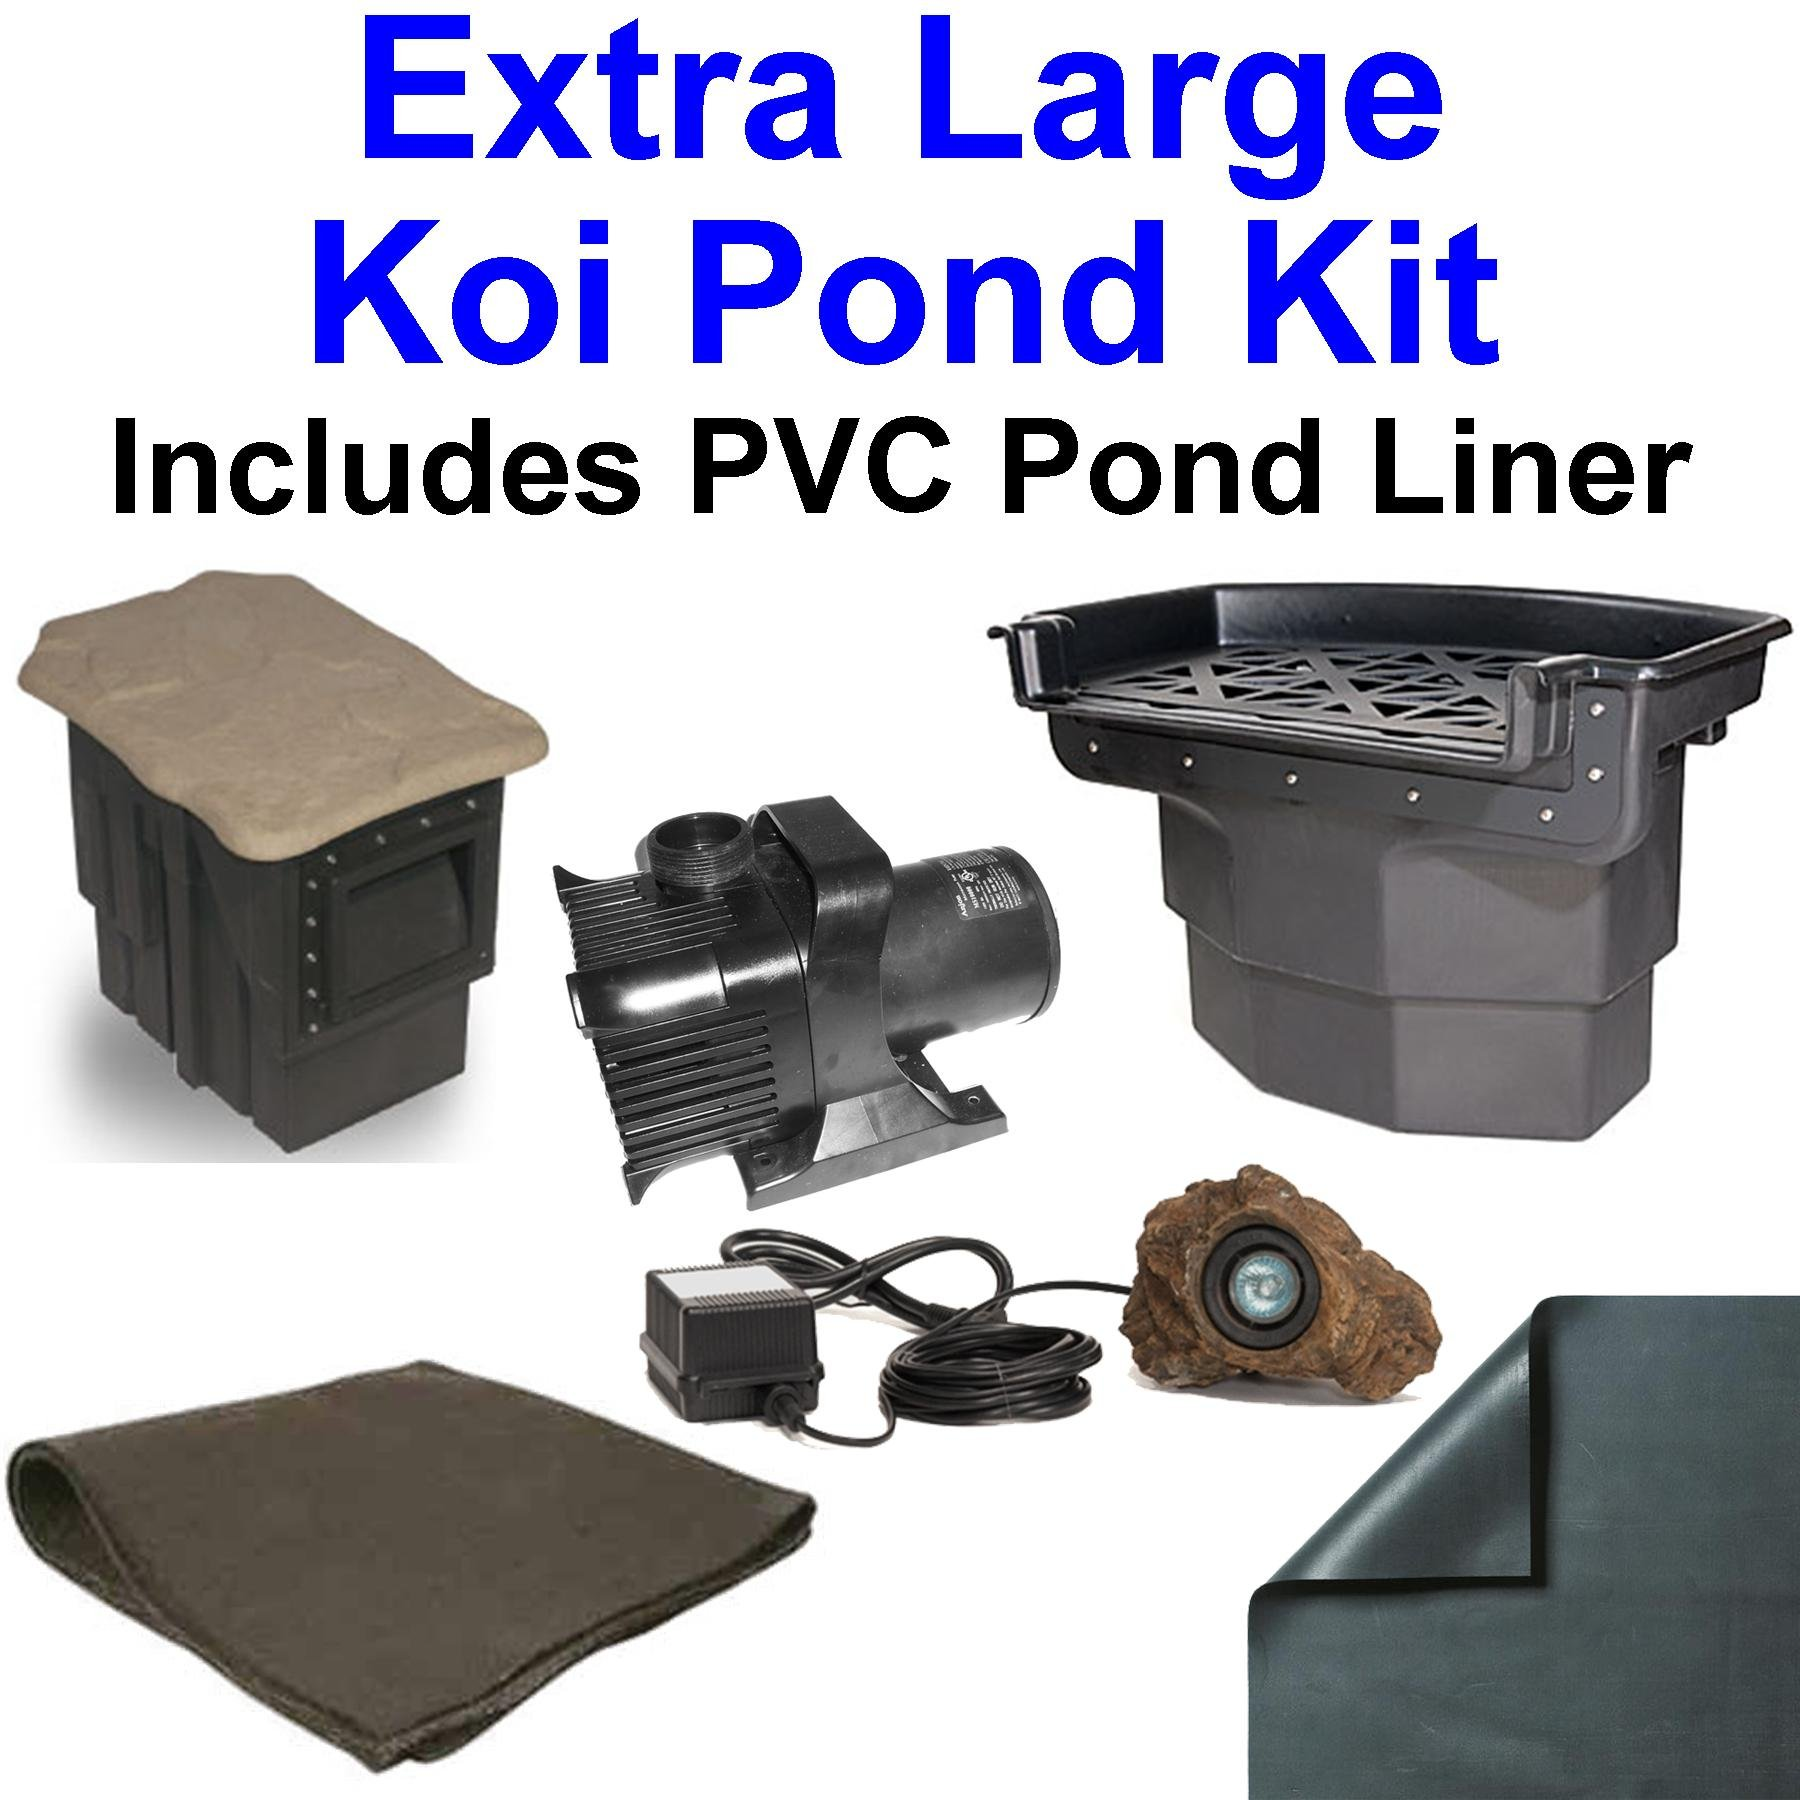 20' x 30' Extra Large PVC Pond Kit, Atlantic Water Gardens BF2600 Filtering Waterfall & PS1311 Skimmer, 5,200 GPH Pump - PVC2030